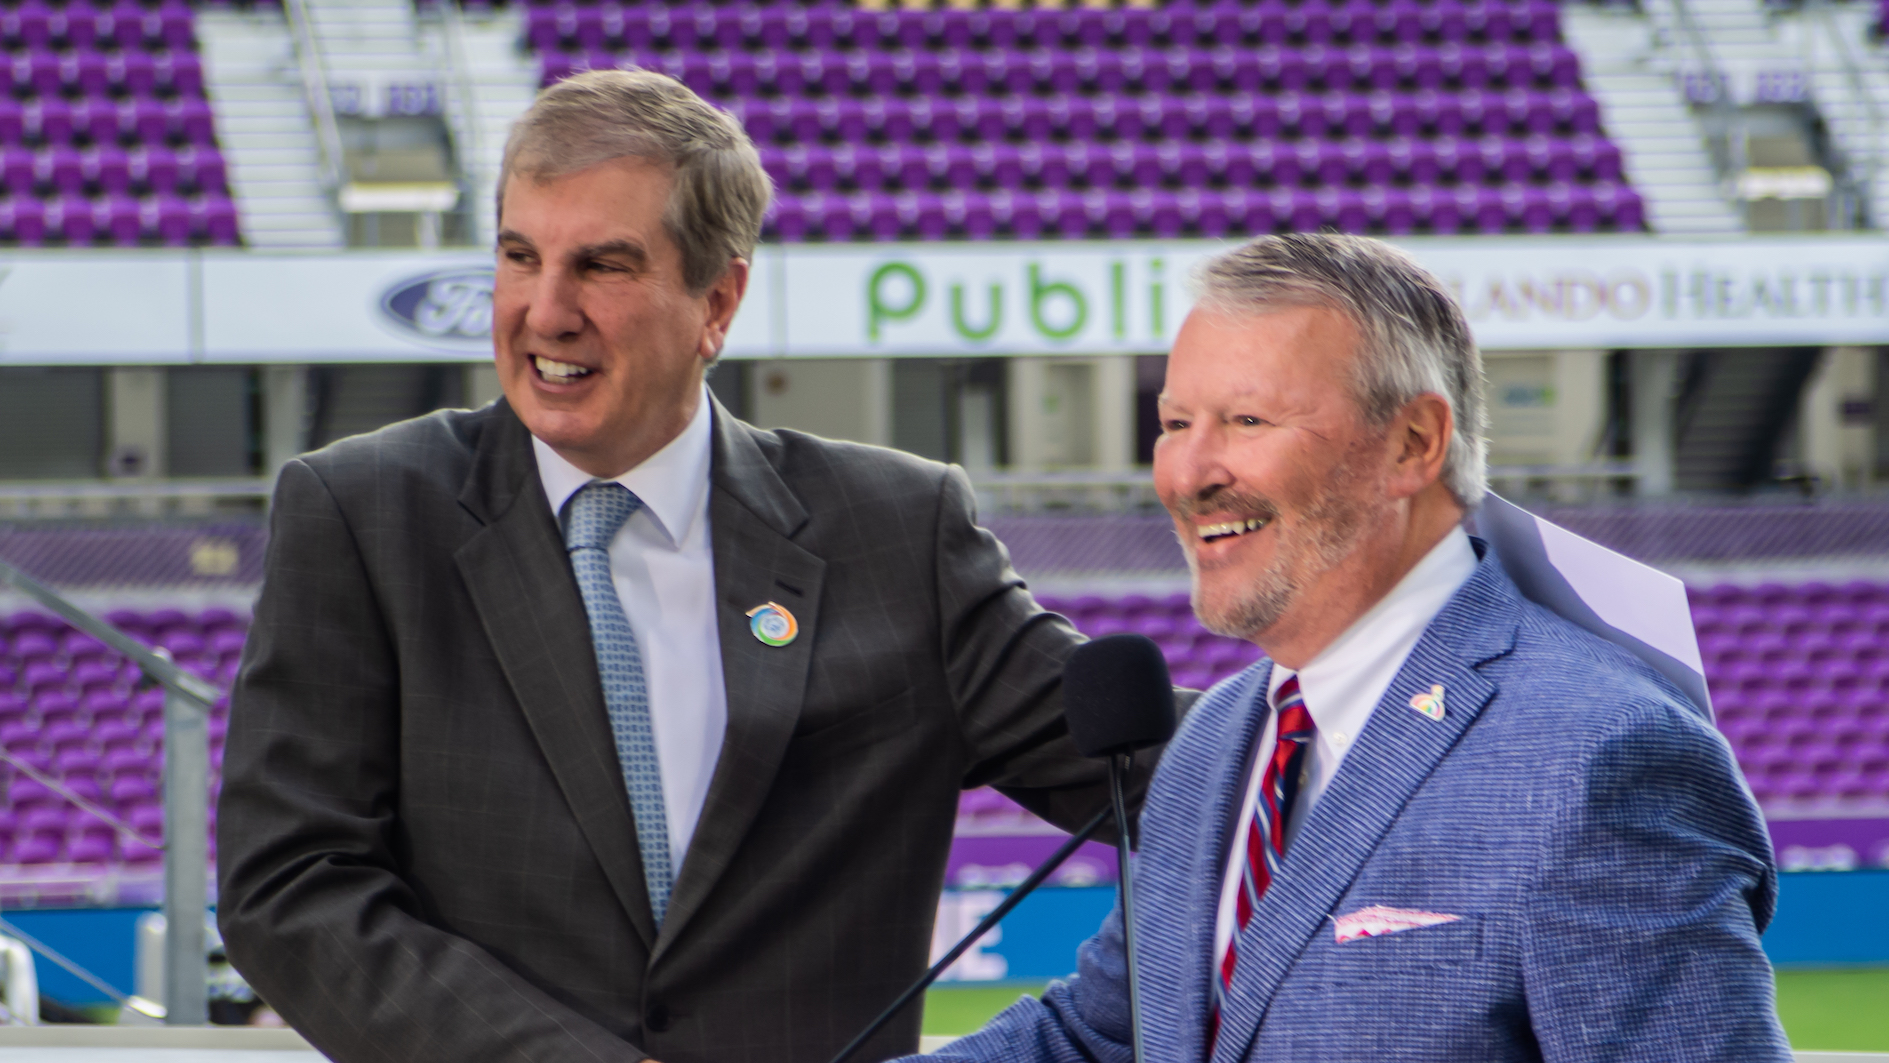 2022 Special Olympics USA Games One-Year-Out Announcements